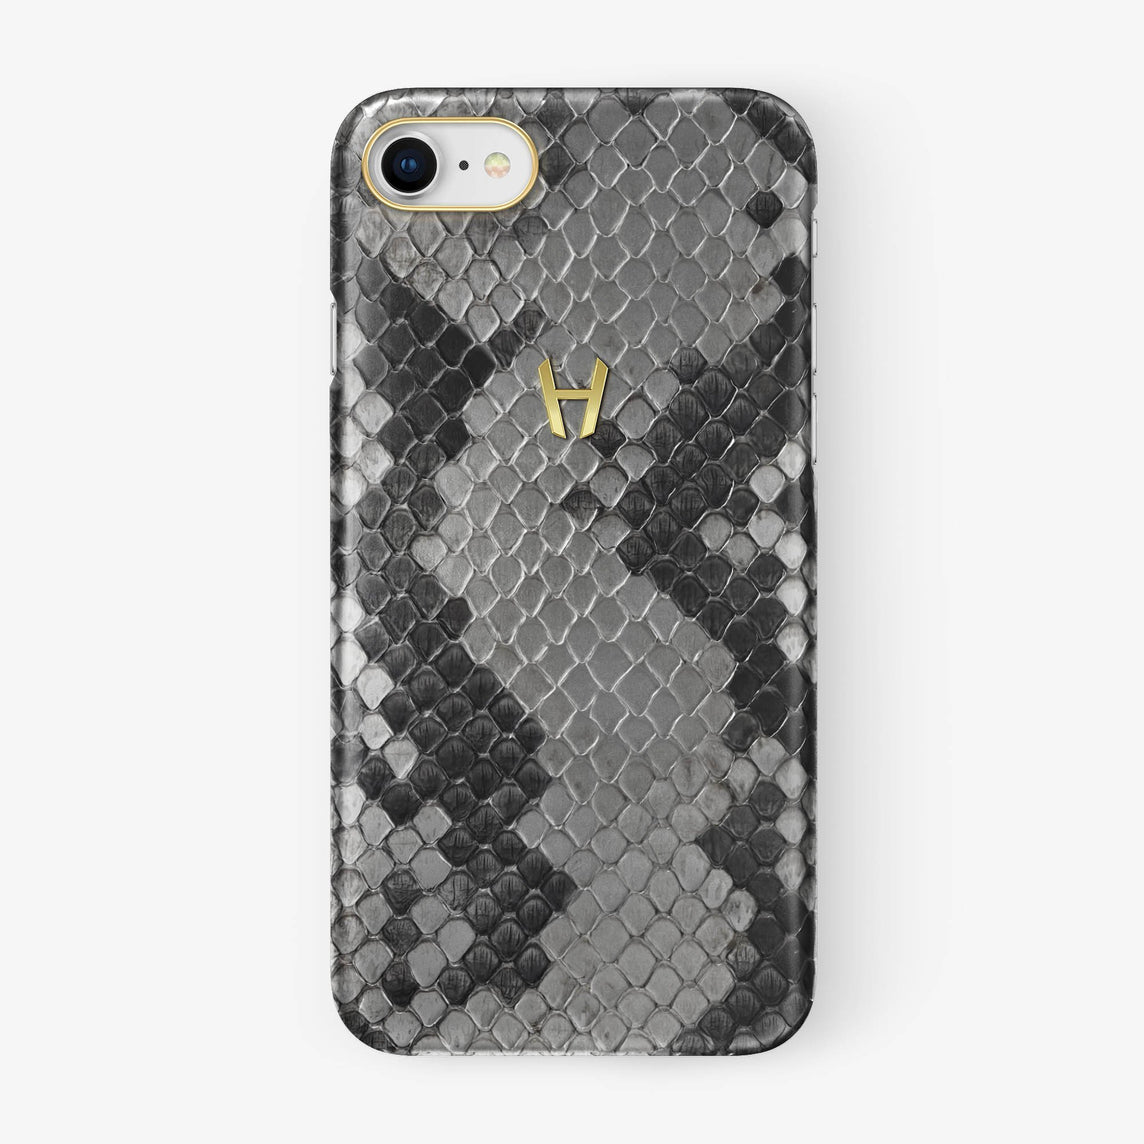 Natural Python iPhone Case for iPhone 7/8 finishing yellow gold - Hadoro Luxury Cases